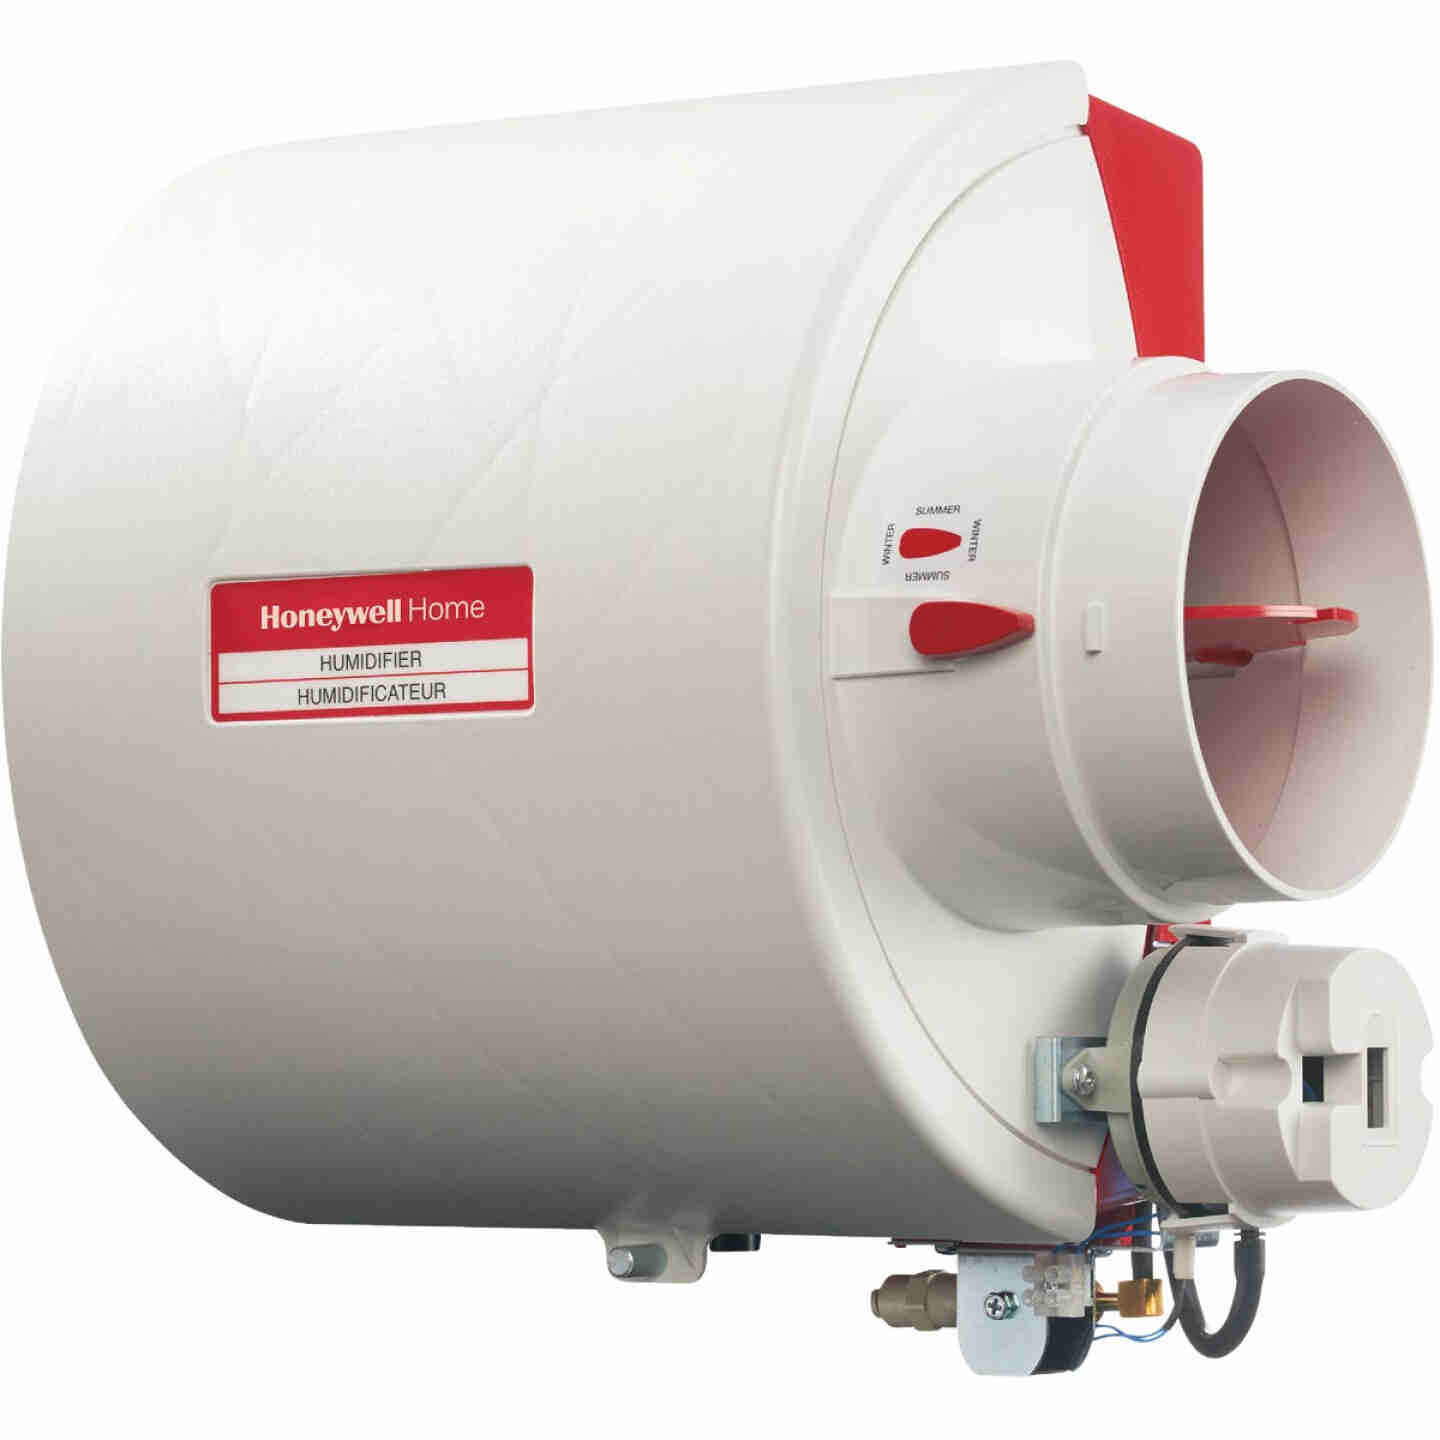 Honeywell Home 10.94 In. W. x 12.75 In. H. x 9 In. D. Whole House Flow-Thru Bypass Furnace Humidifier Image 1